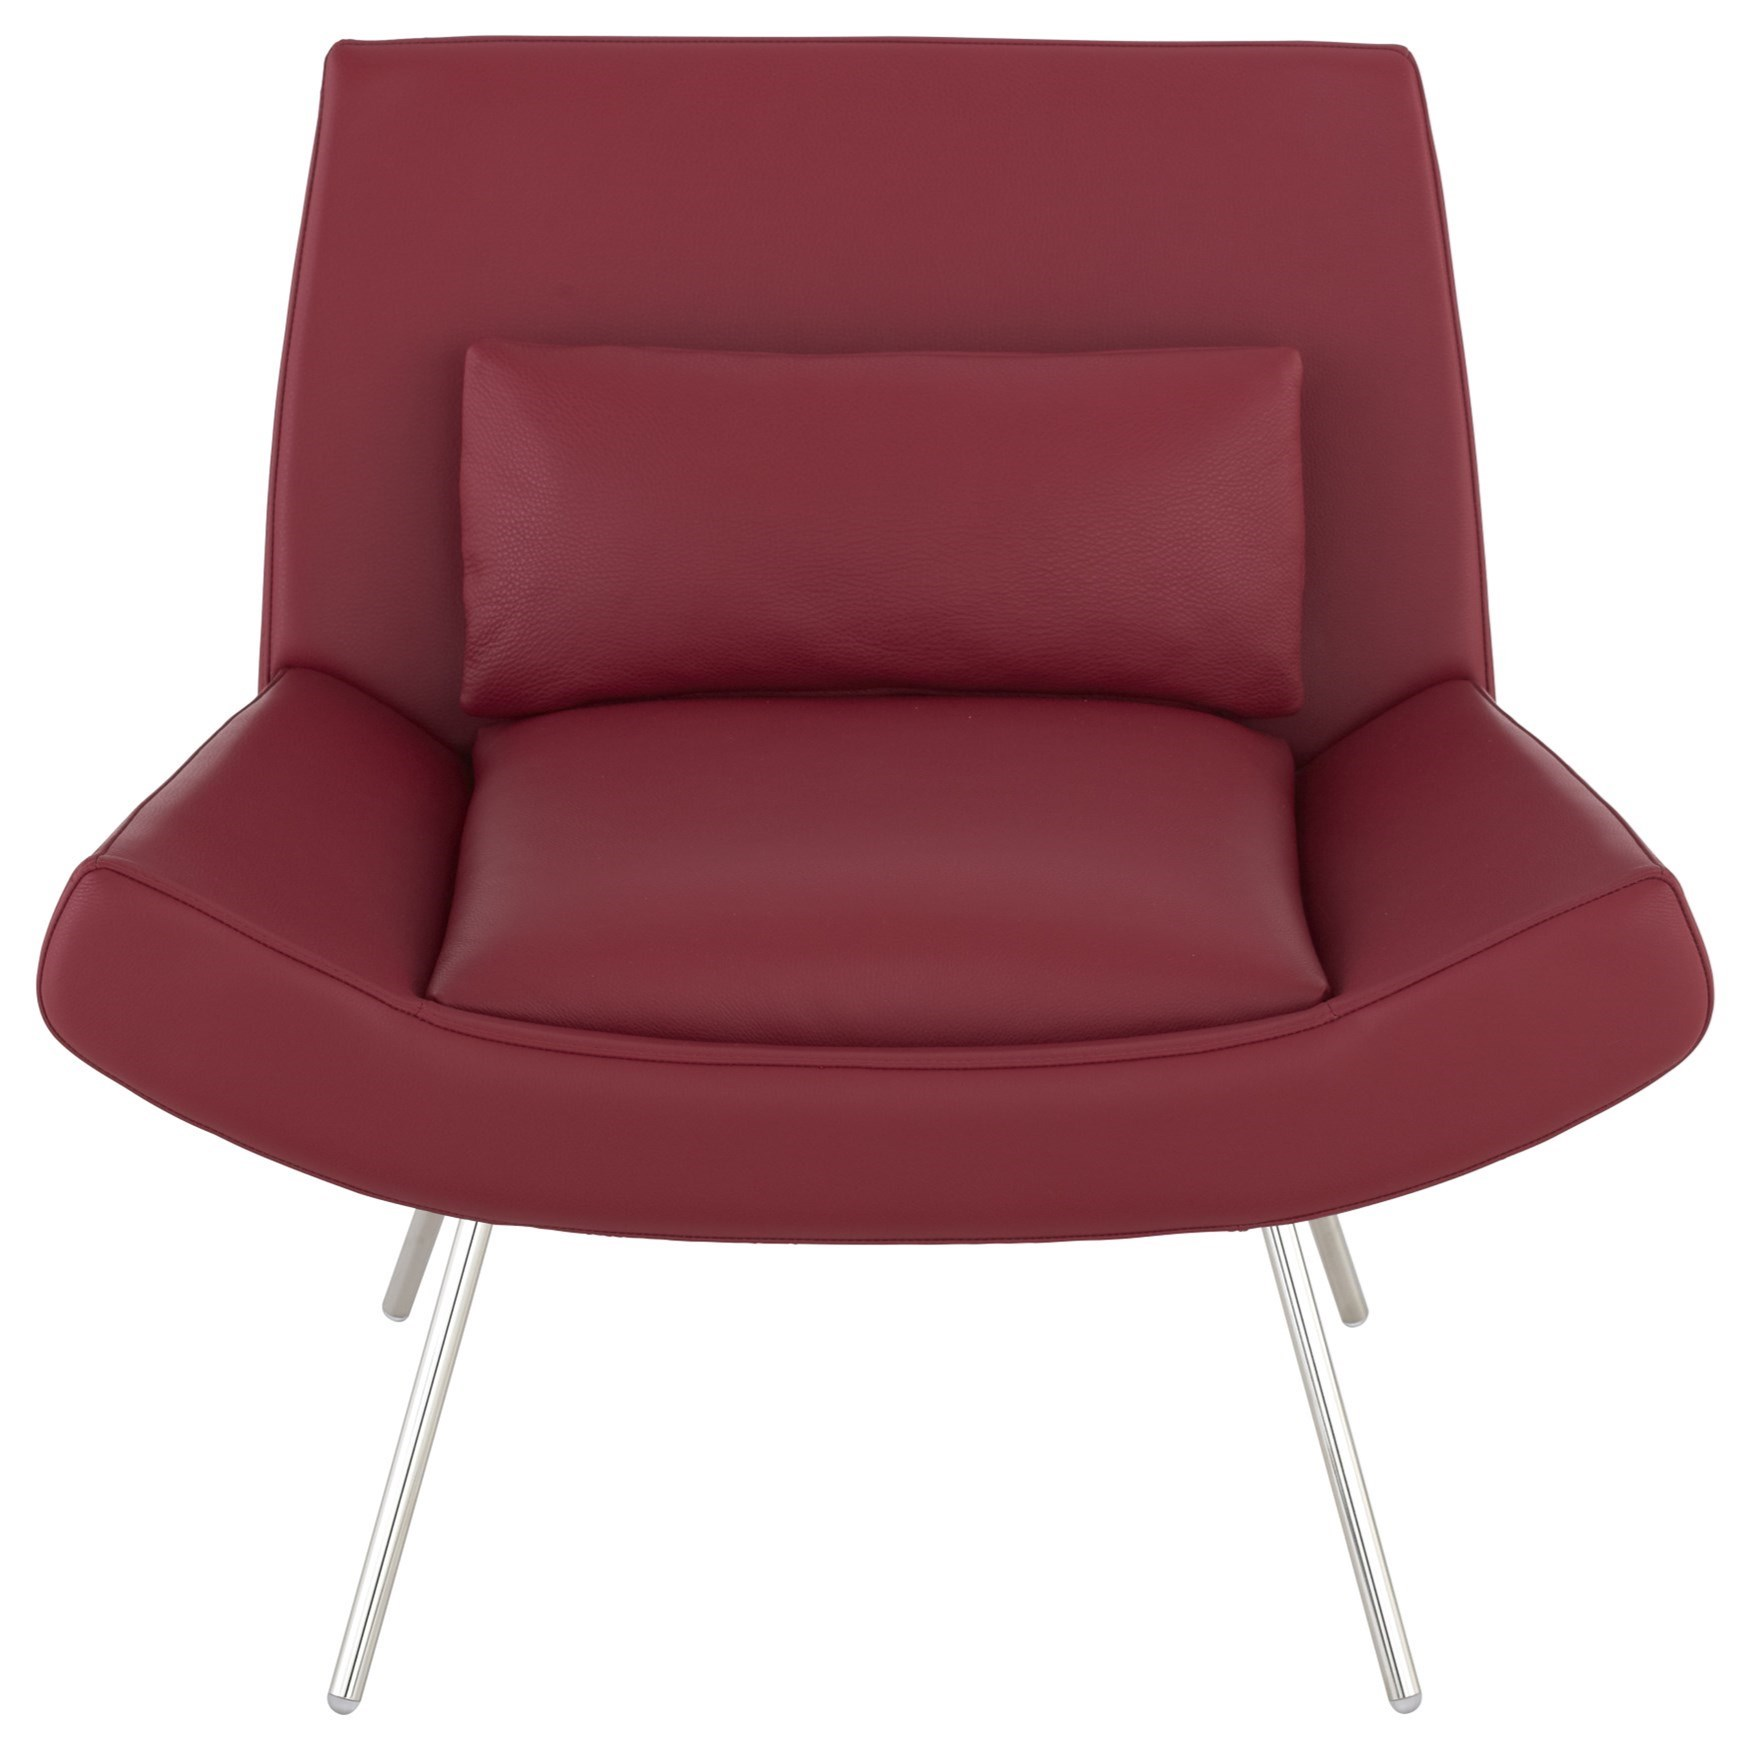 Jake Accent Chair by American Leather at Williams & Kay